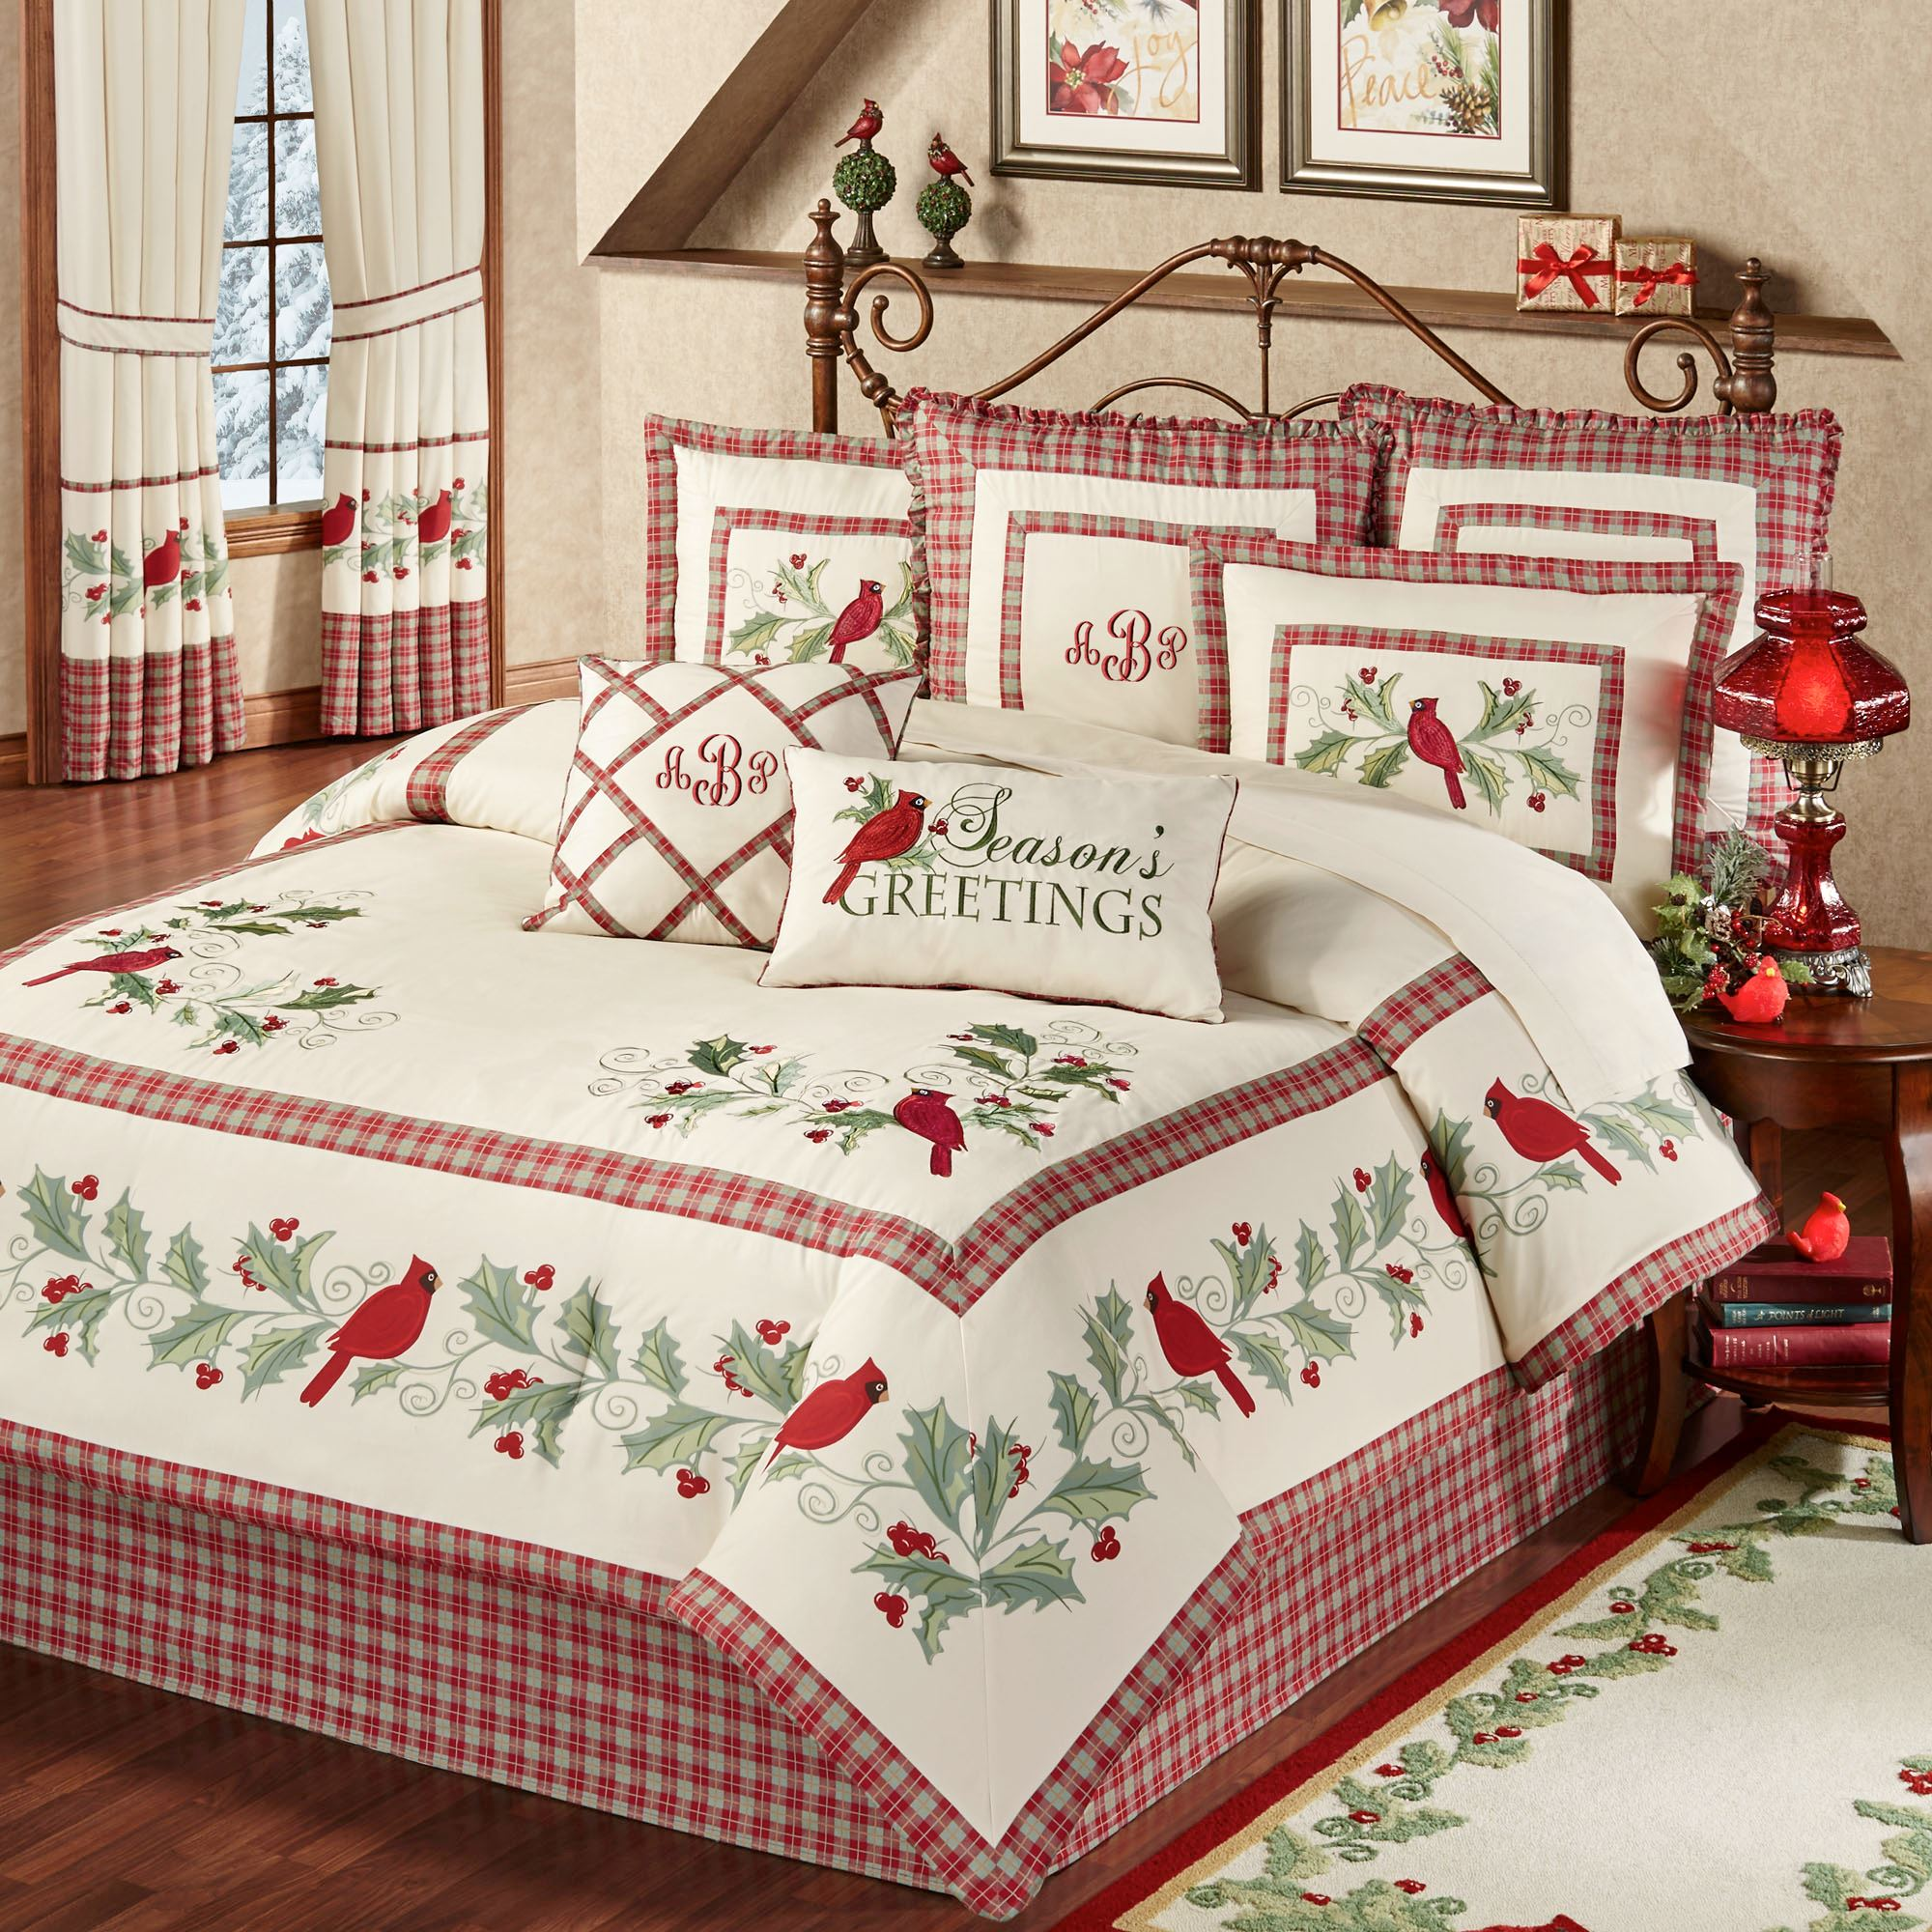 Best Comforter Images Of Christmas Bedspreads And Quilts Christmas Tree